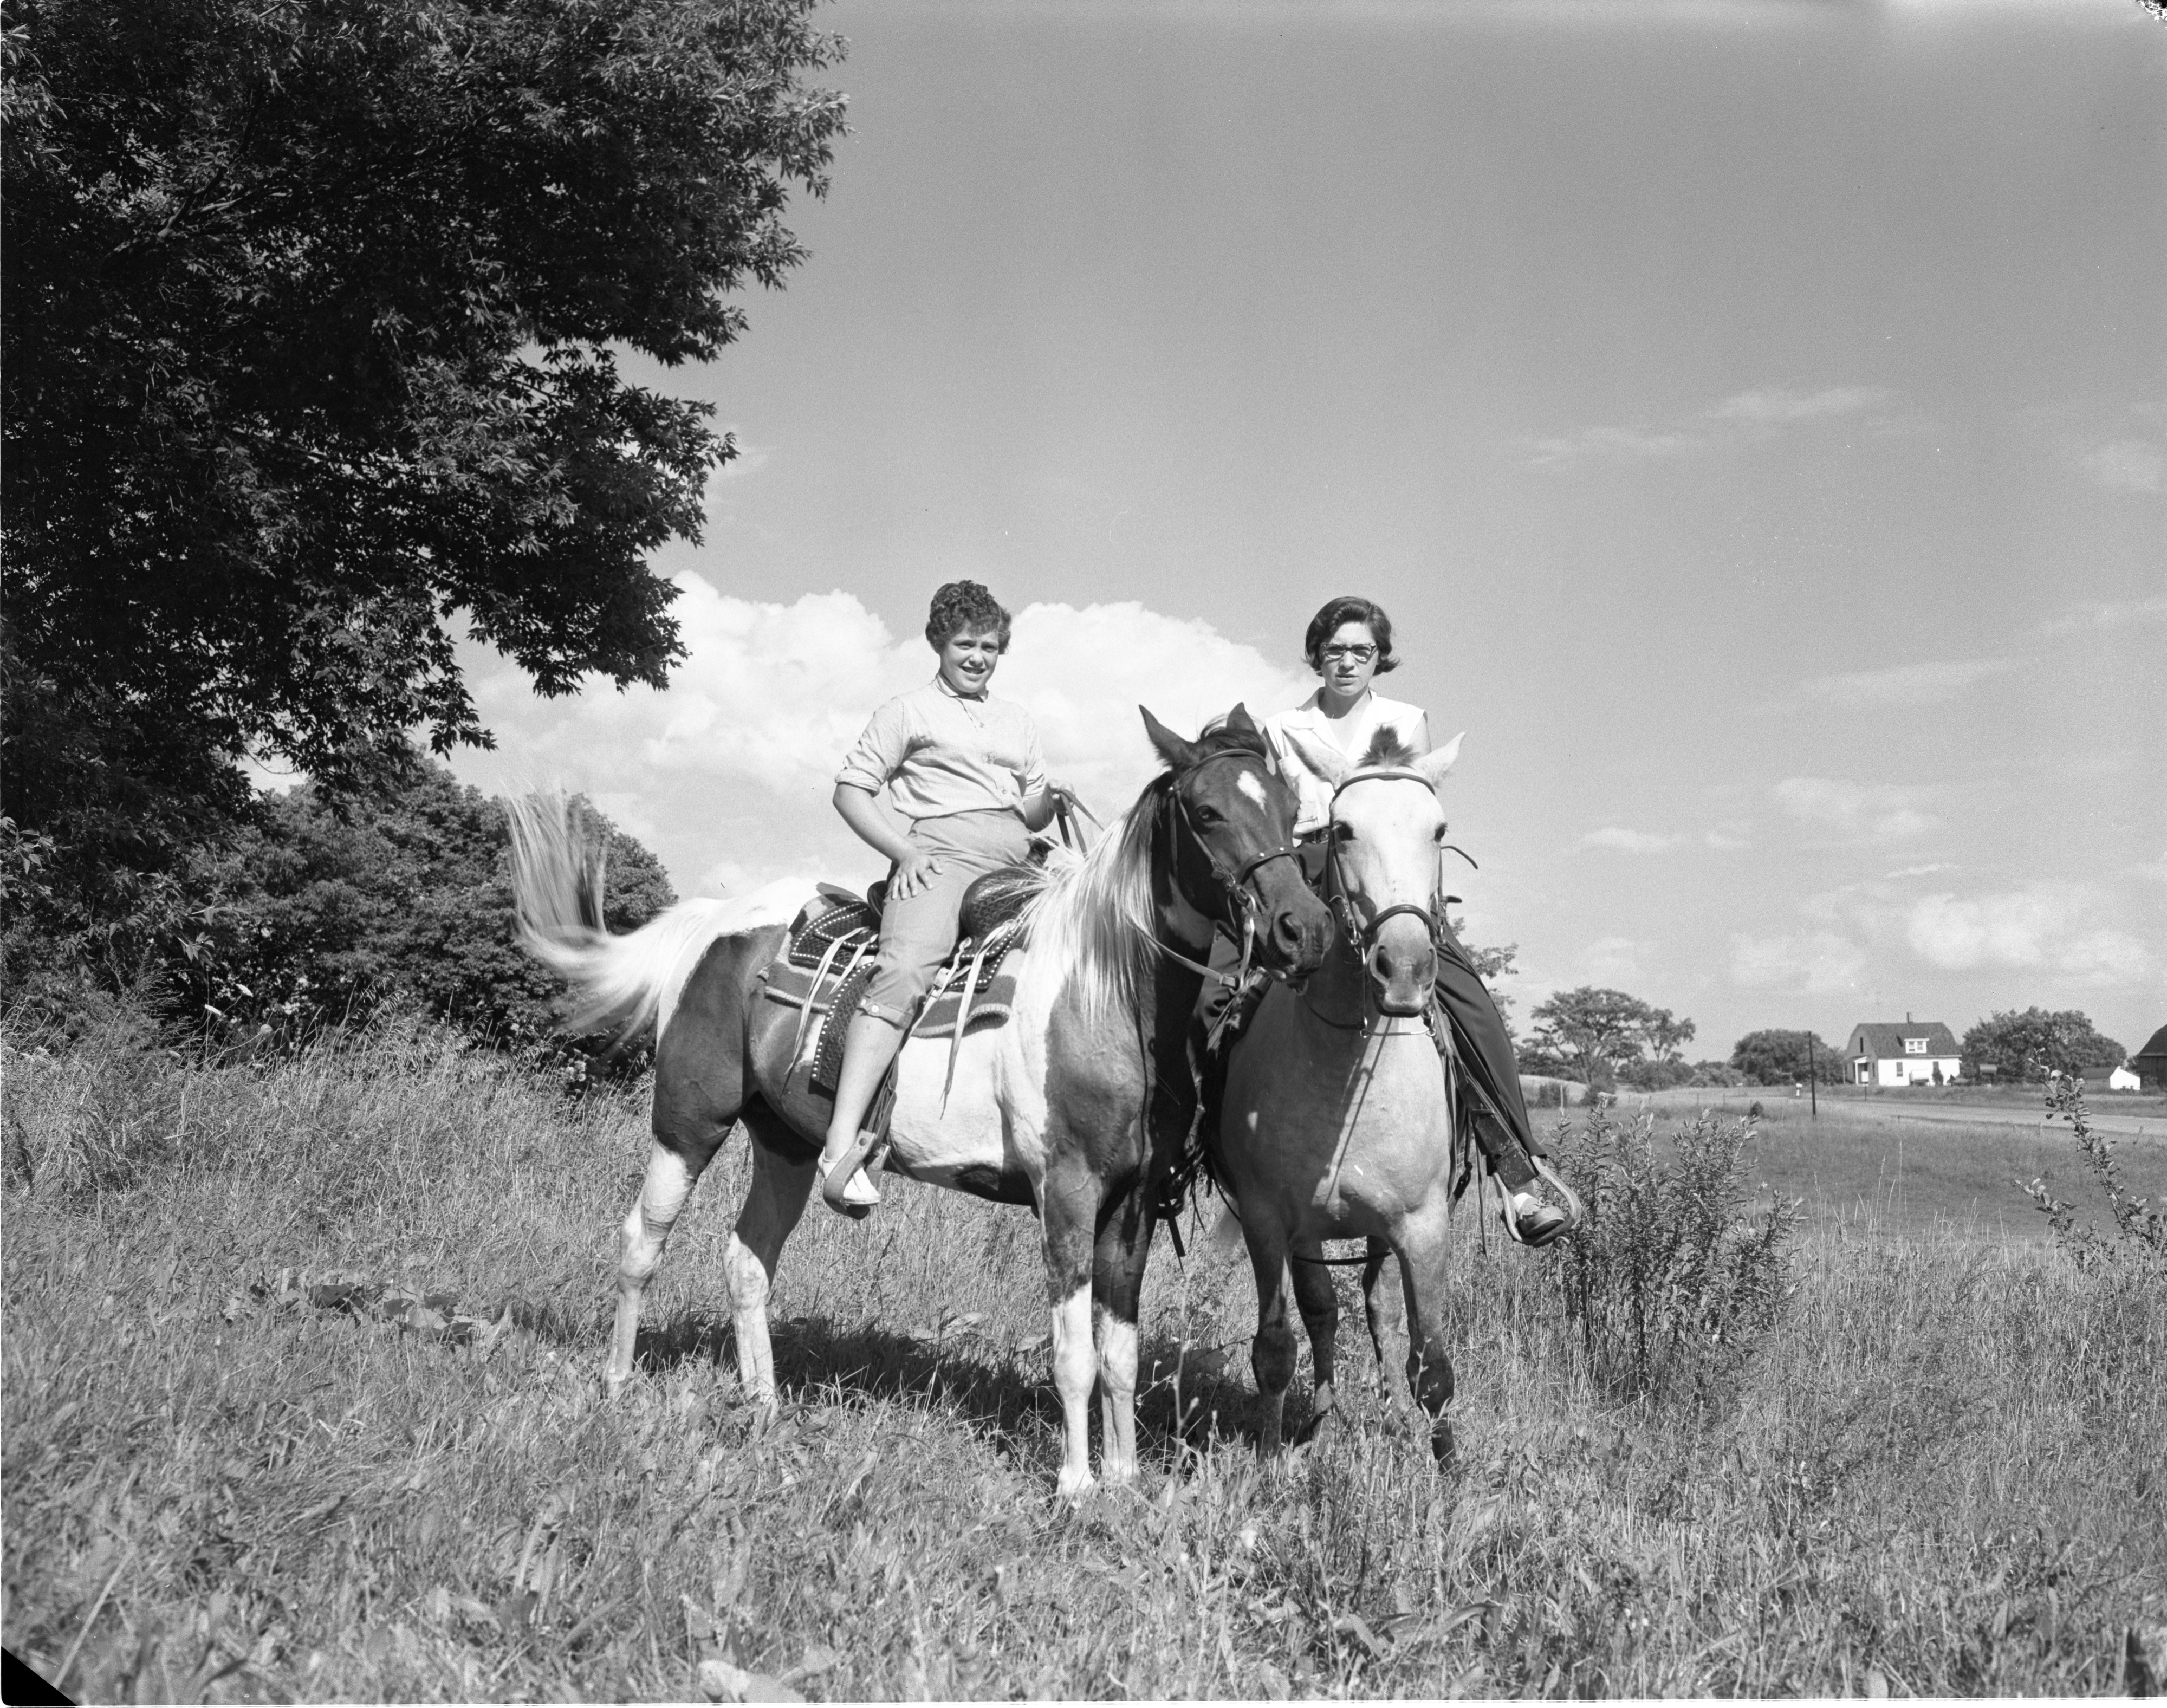 Sisters, Joanne & Bonnie Yarger, On Horseback, August 1956 image